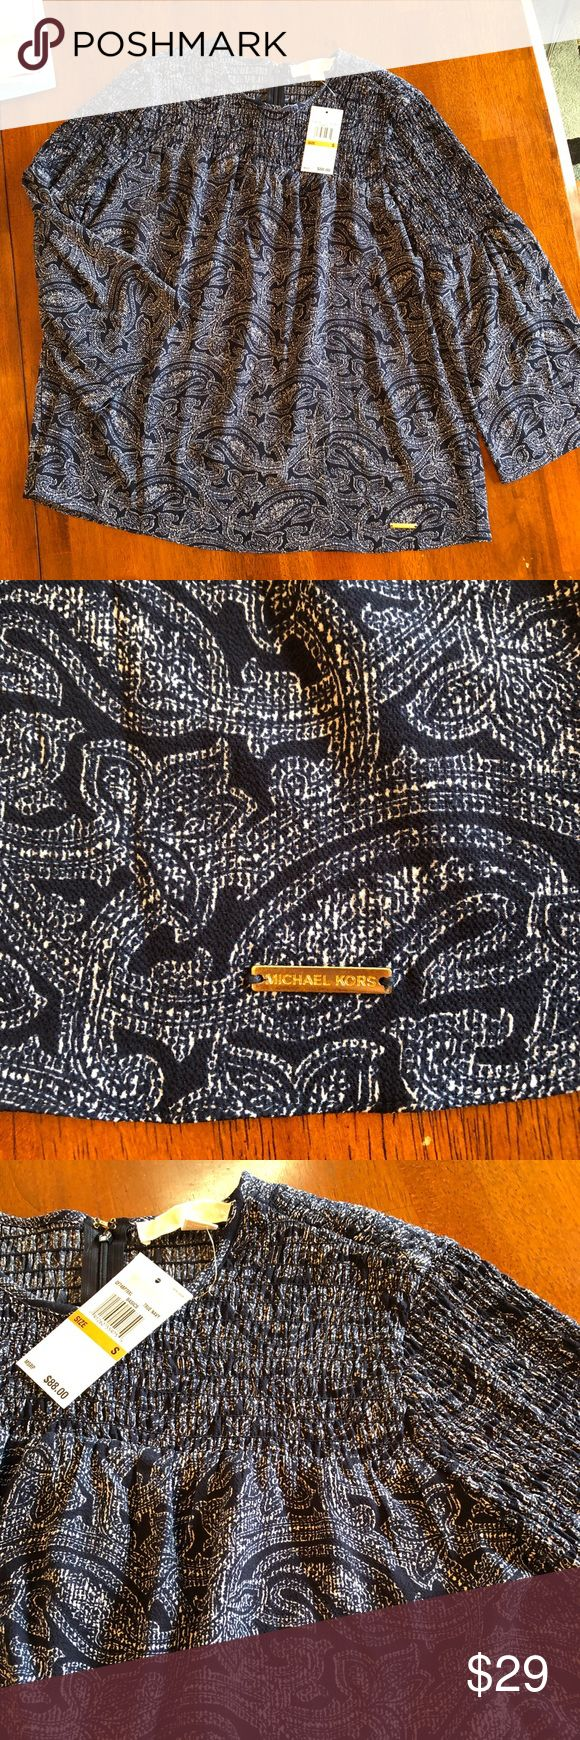 ⭐️ Beautiful Michael Kors top! ⭐️ Michael Kors navy/white paisley print peasant top! This light and flowy semi-sheer top has bell sleeves with puckered stretchy pleats at the neck and into the sleeves. A hidden 1/4 zipper in the back with a hook and eye closure. Beautiful addition to any spring wardrobe!! NWT ⭐️ Michael Kors Tops Blouses